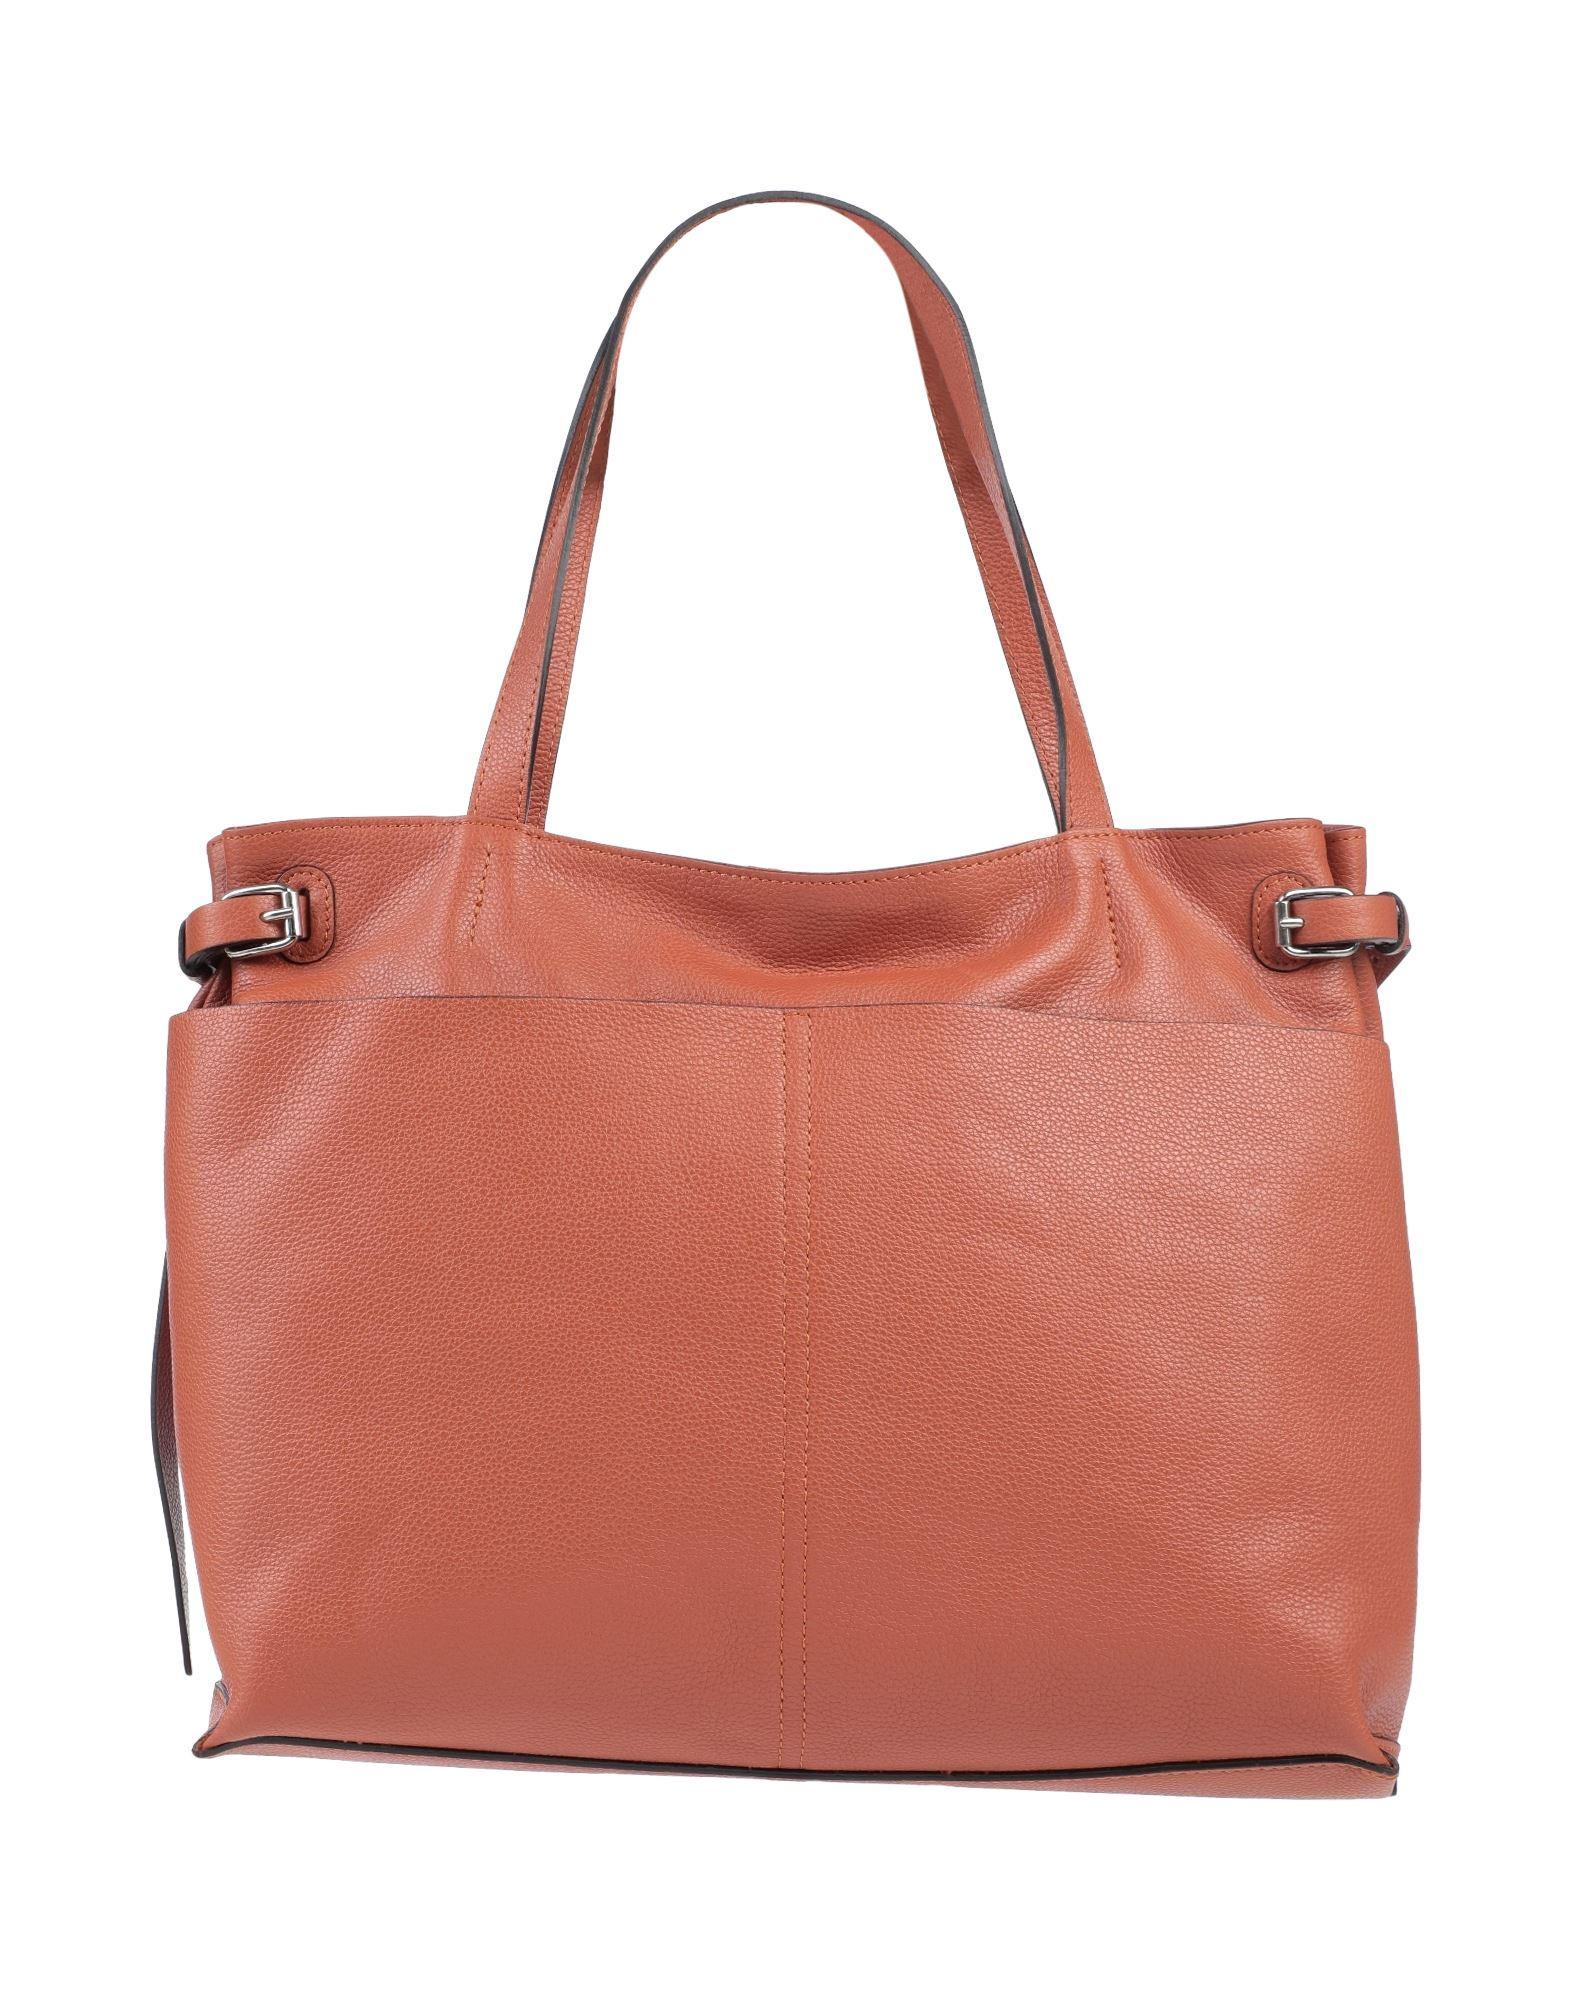 GIANNI CHIARINI Handbags - Item 45532766